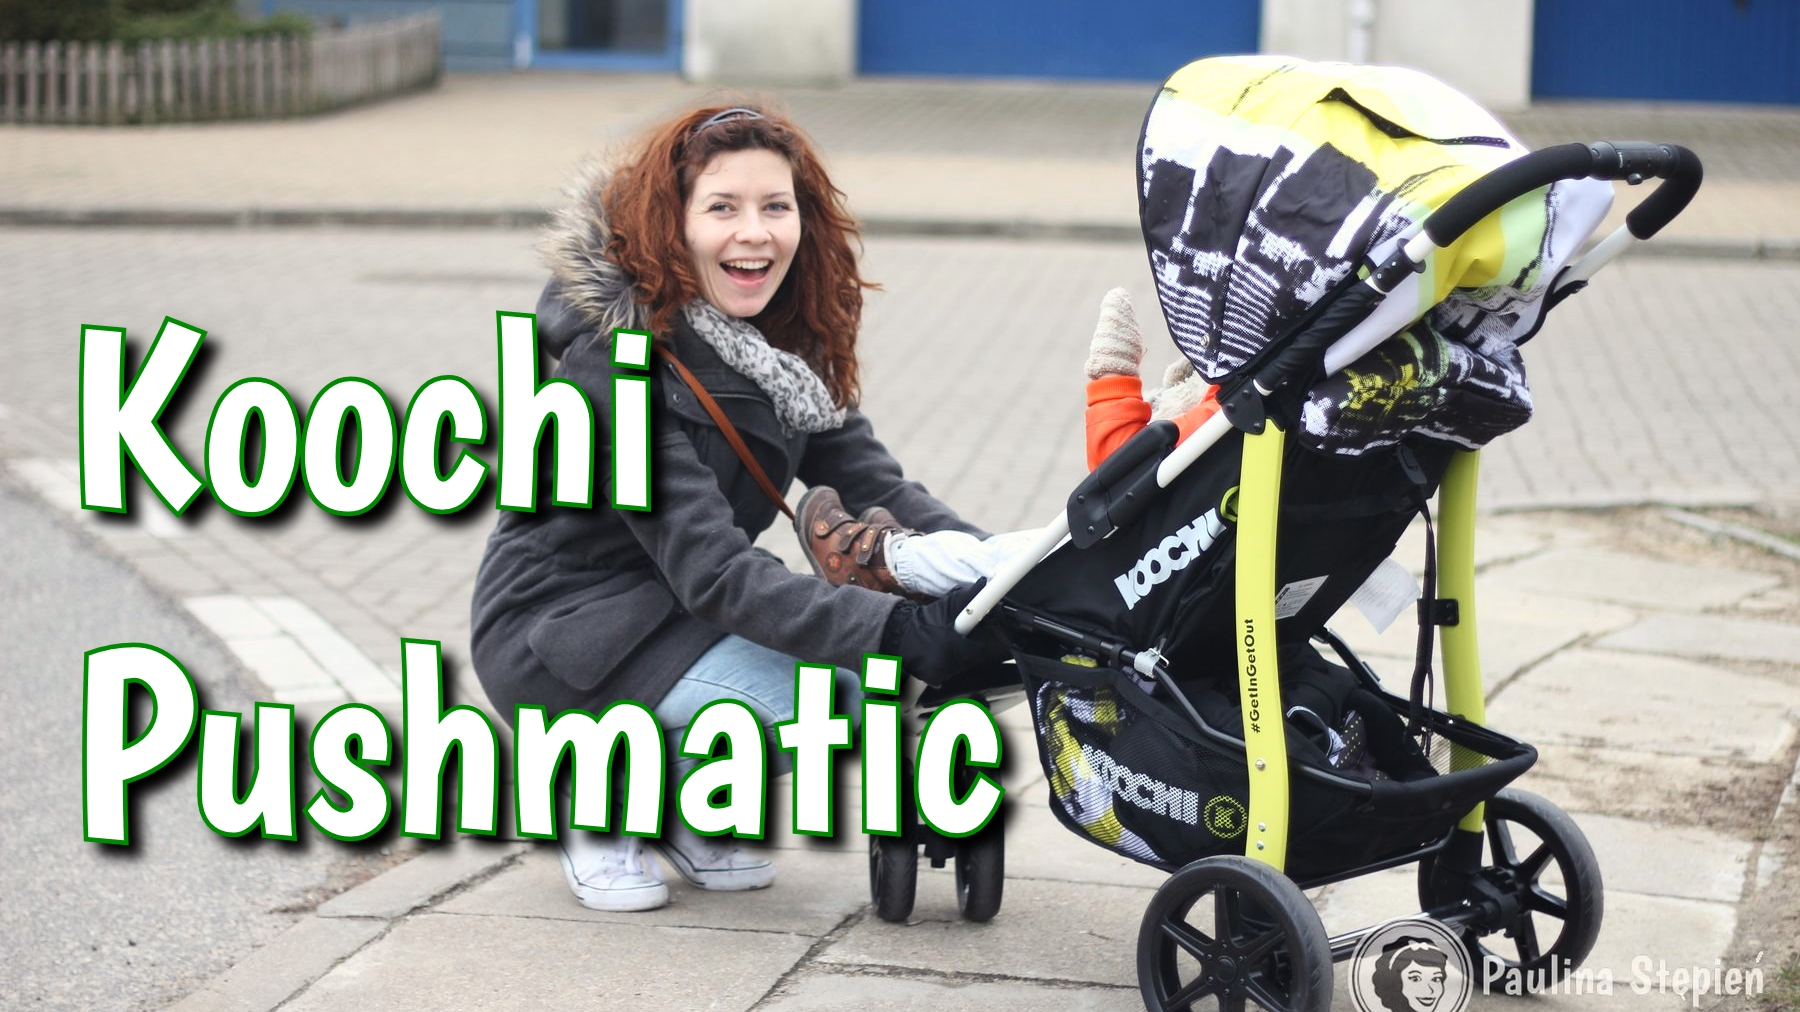 Koochi Pushmatic